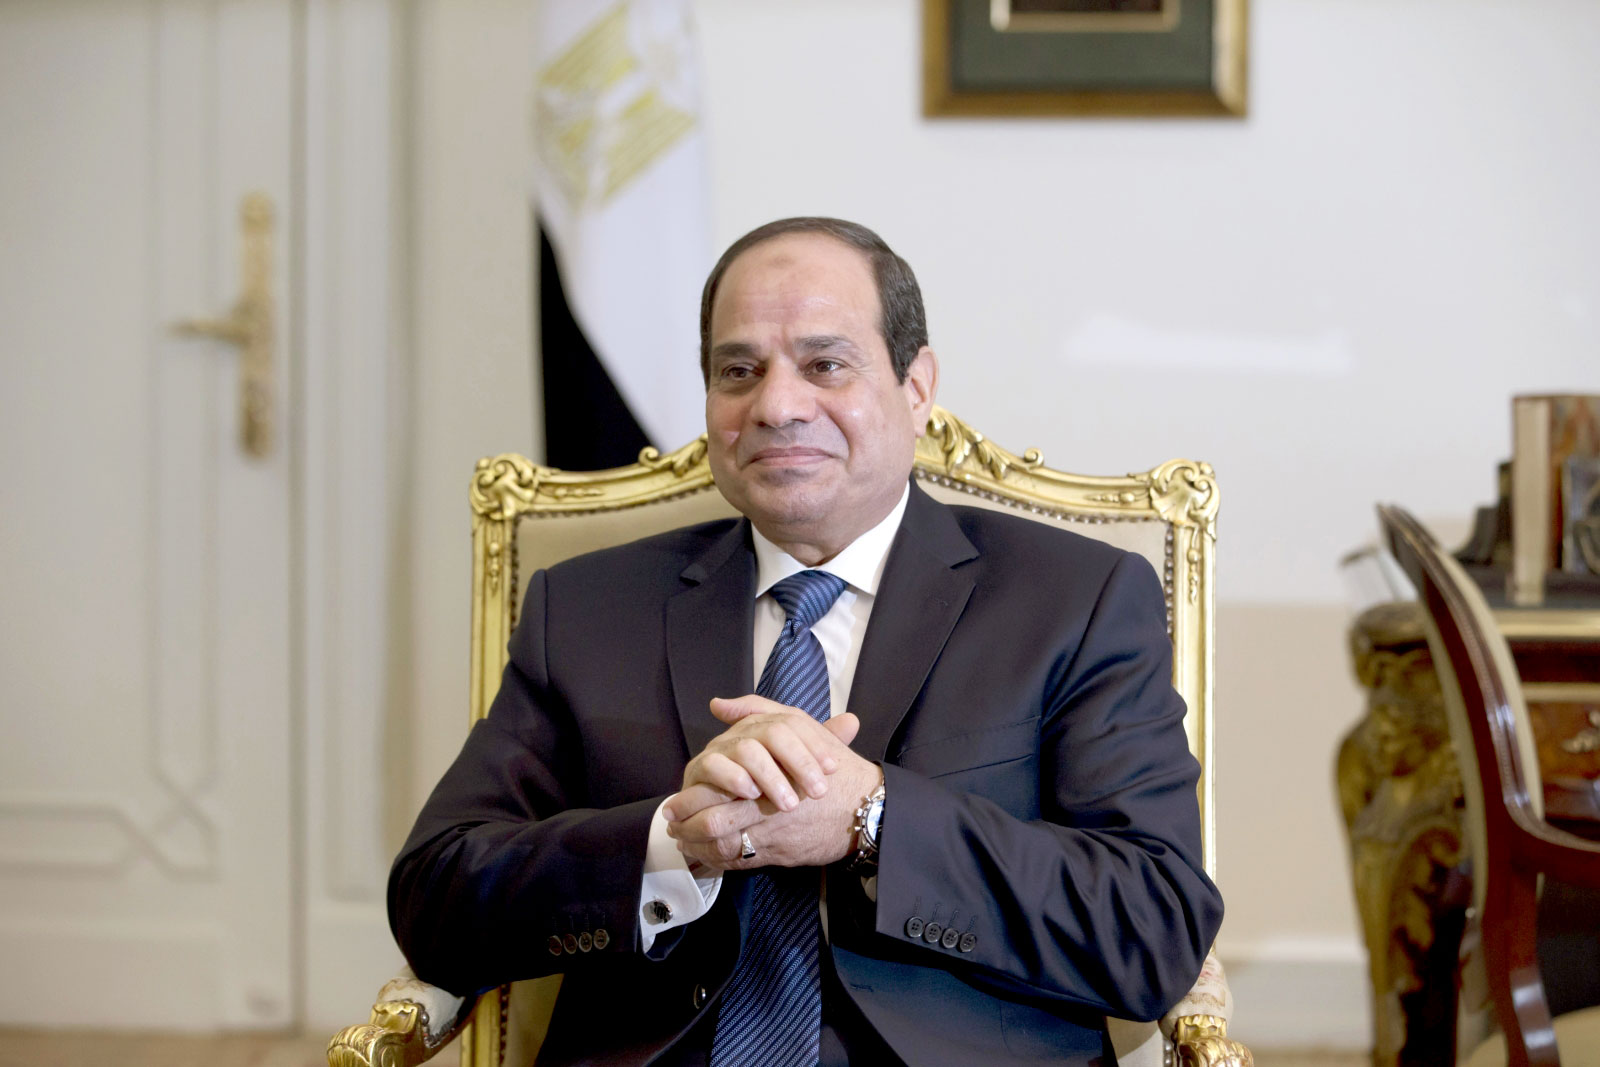 egypt_general_abdel_fattah_el-sisi_is_losing_his_wealthy_friends_in_the_gulf